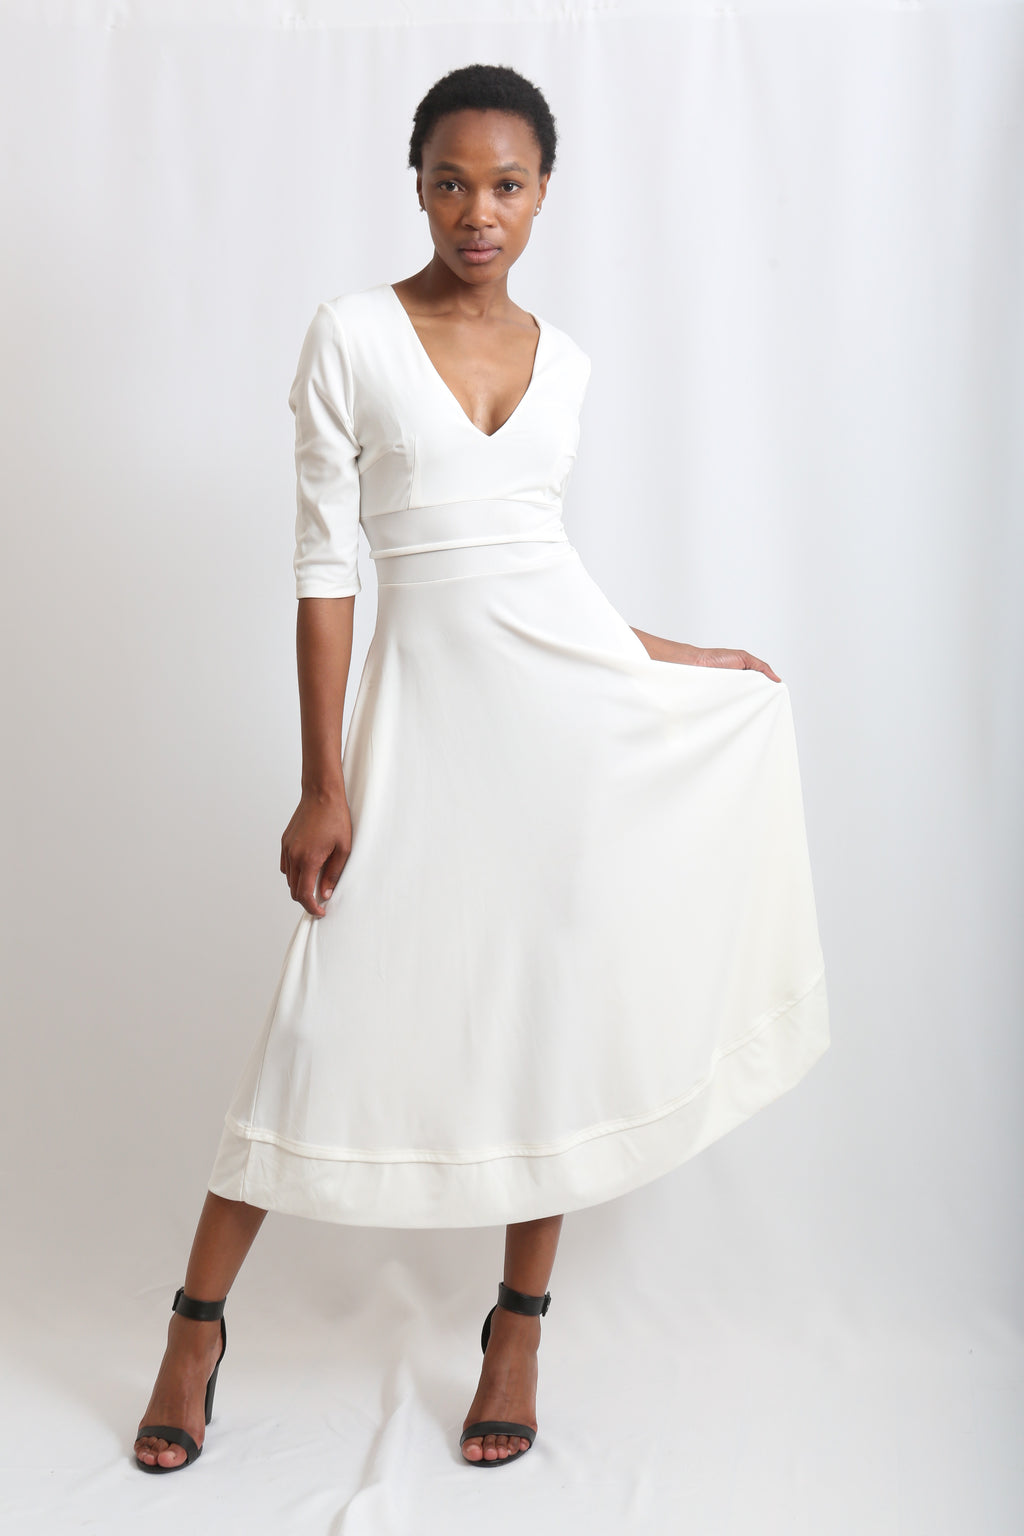 Deep Vneck maxi long dress cream or offwhite available in size small to xxxl in stretchable material at Zinhleolivia.com